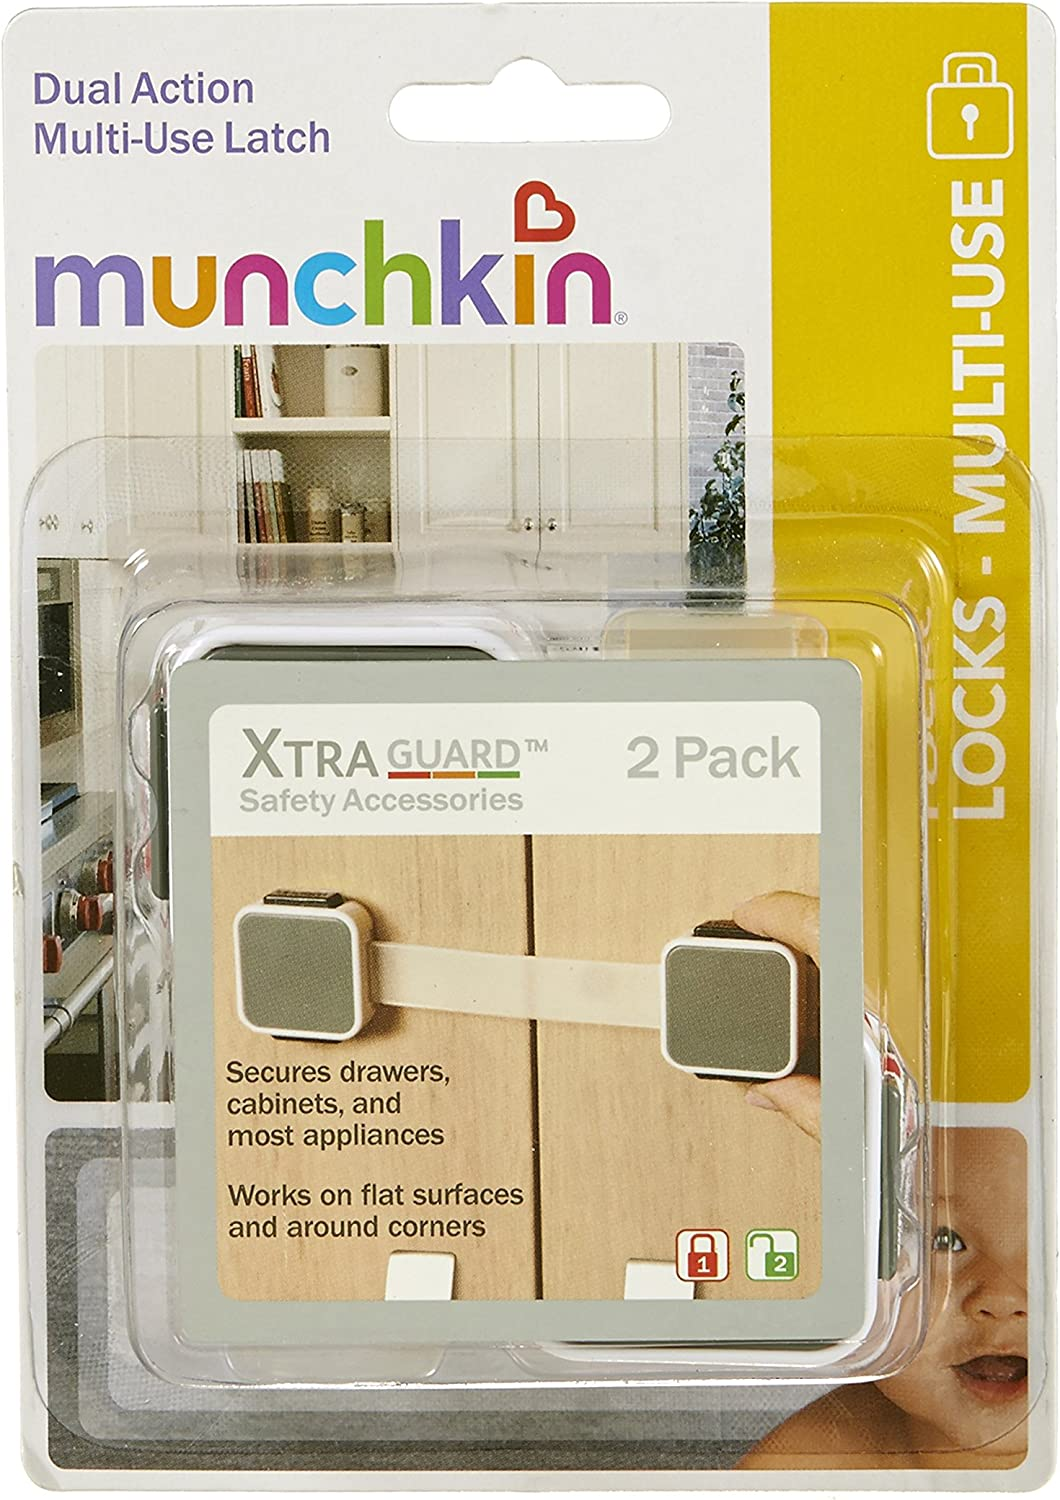 Munchkin Xtraguard Dual Action Multi Use Latches 12 Count